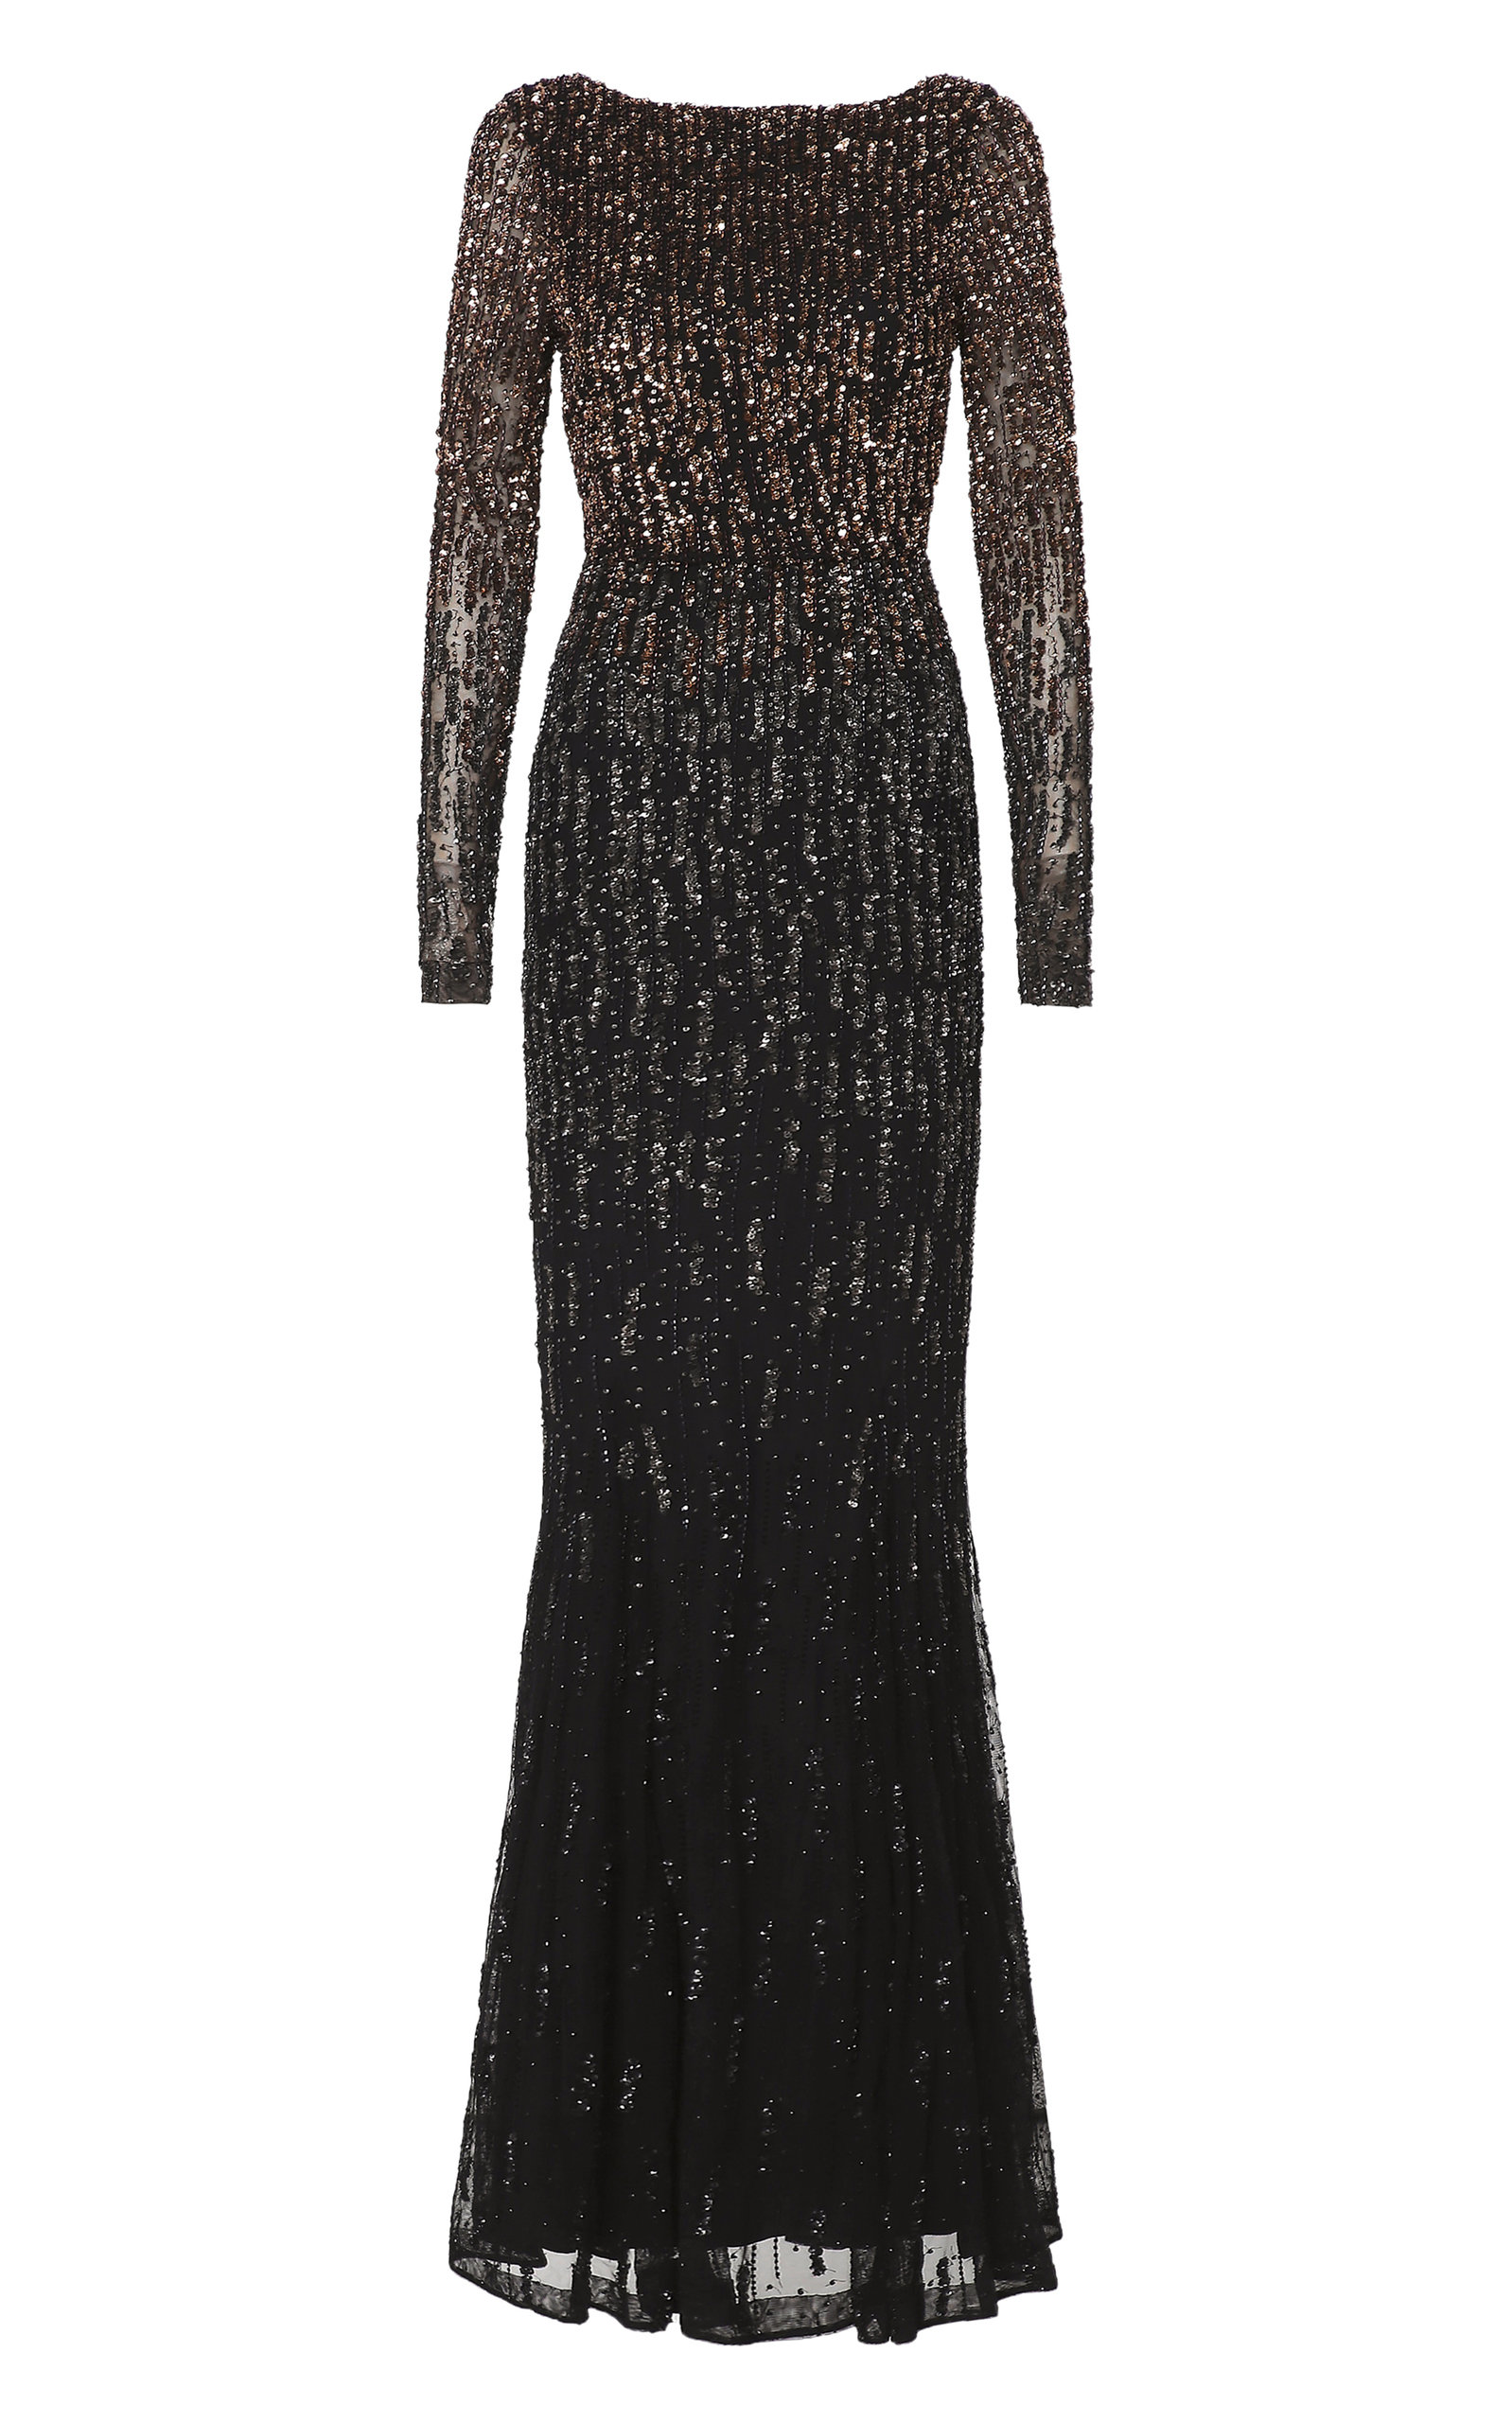 847f165c230 Amabel Embellished Gown by Rachel Gilbert